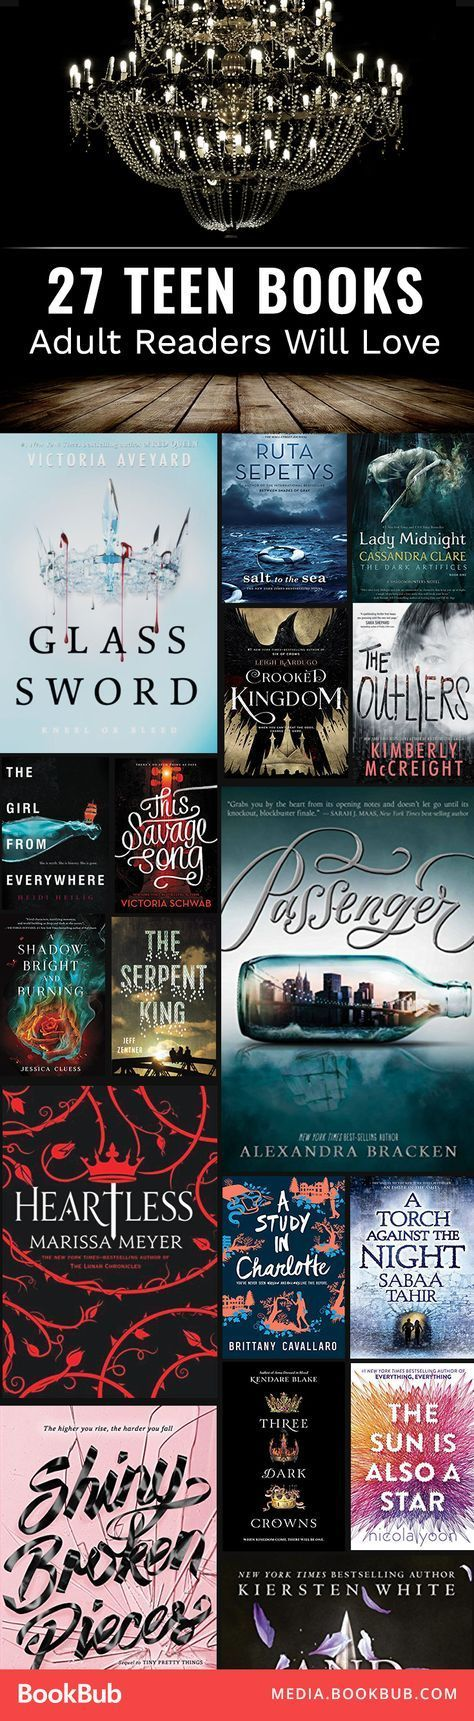 YA books to read for young adults and adults. These are the perfect books to read if you like Divergent or The Hunger Games.